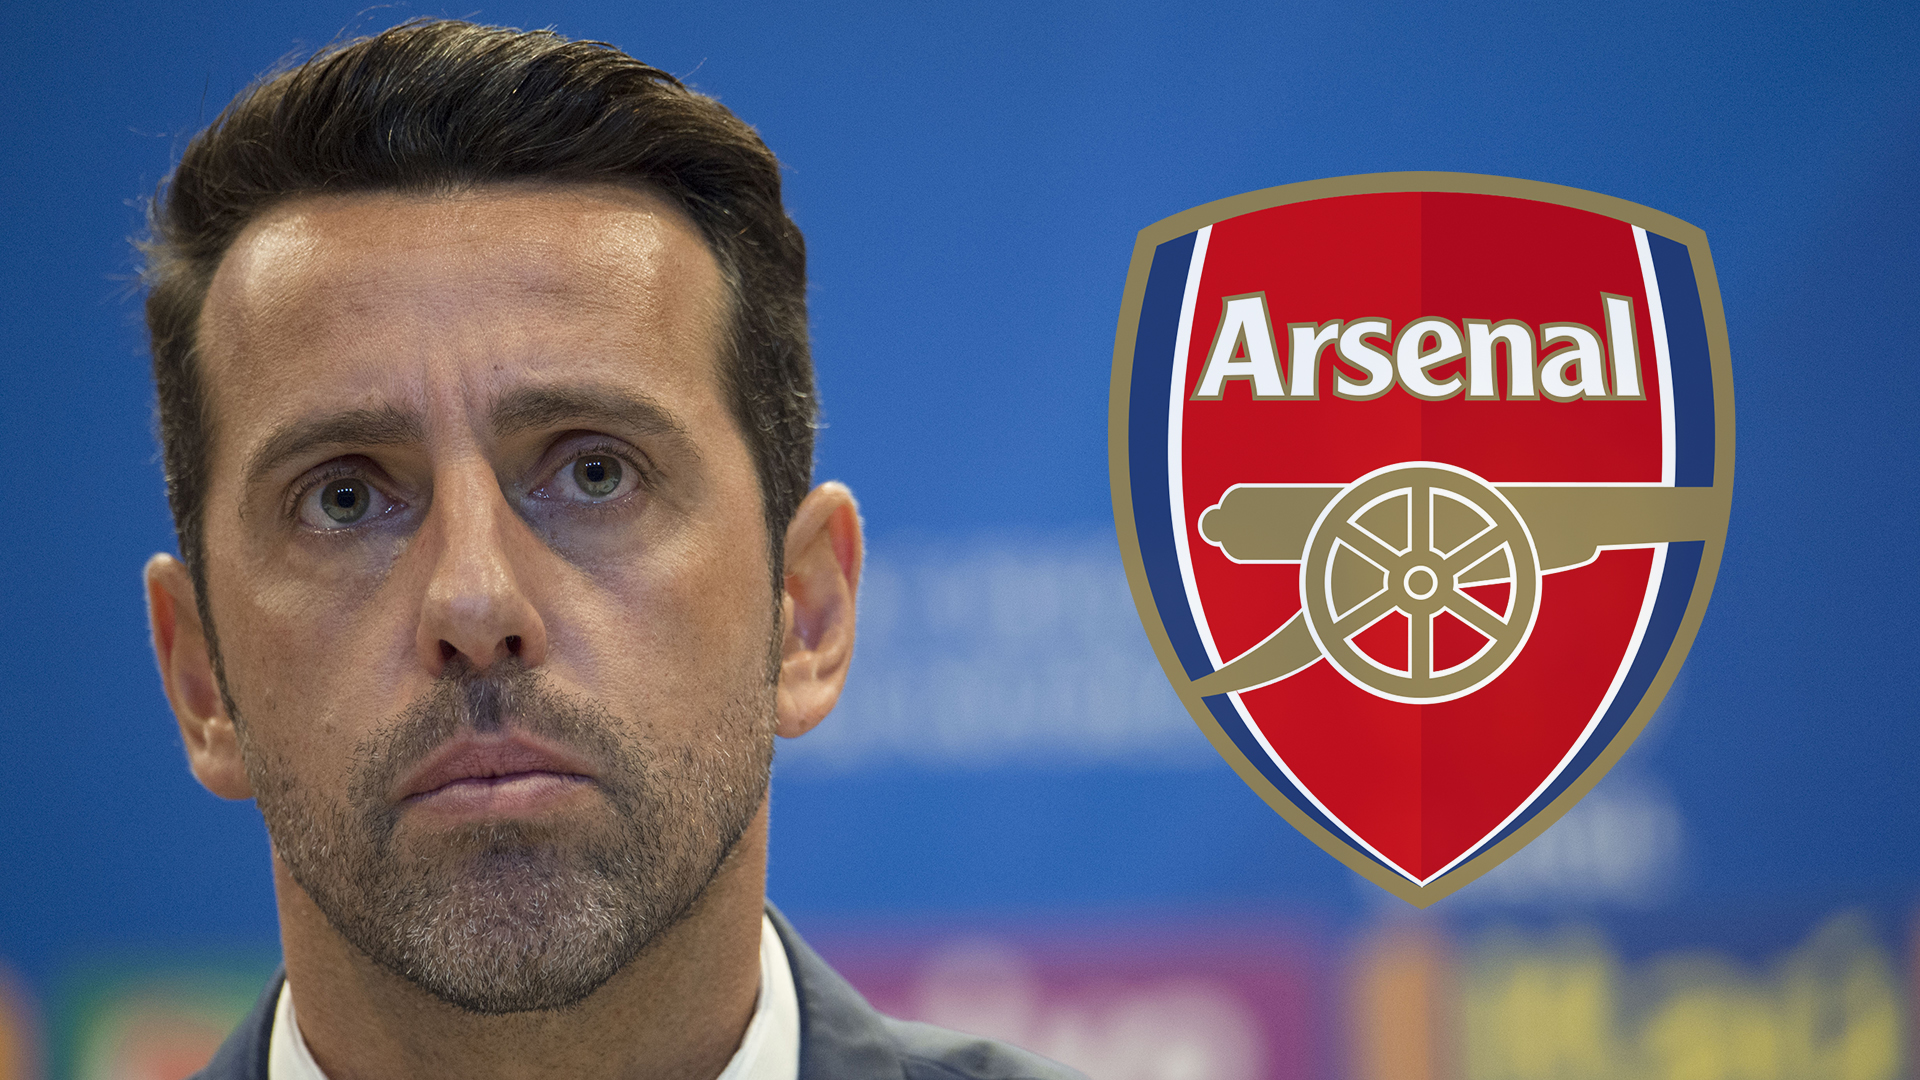 Edu Gaspar Brazil Arsenal